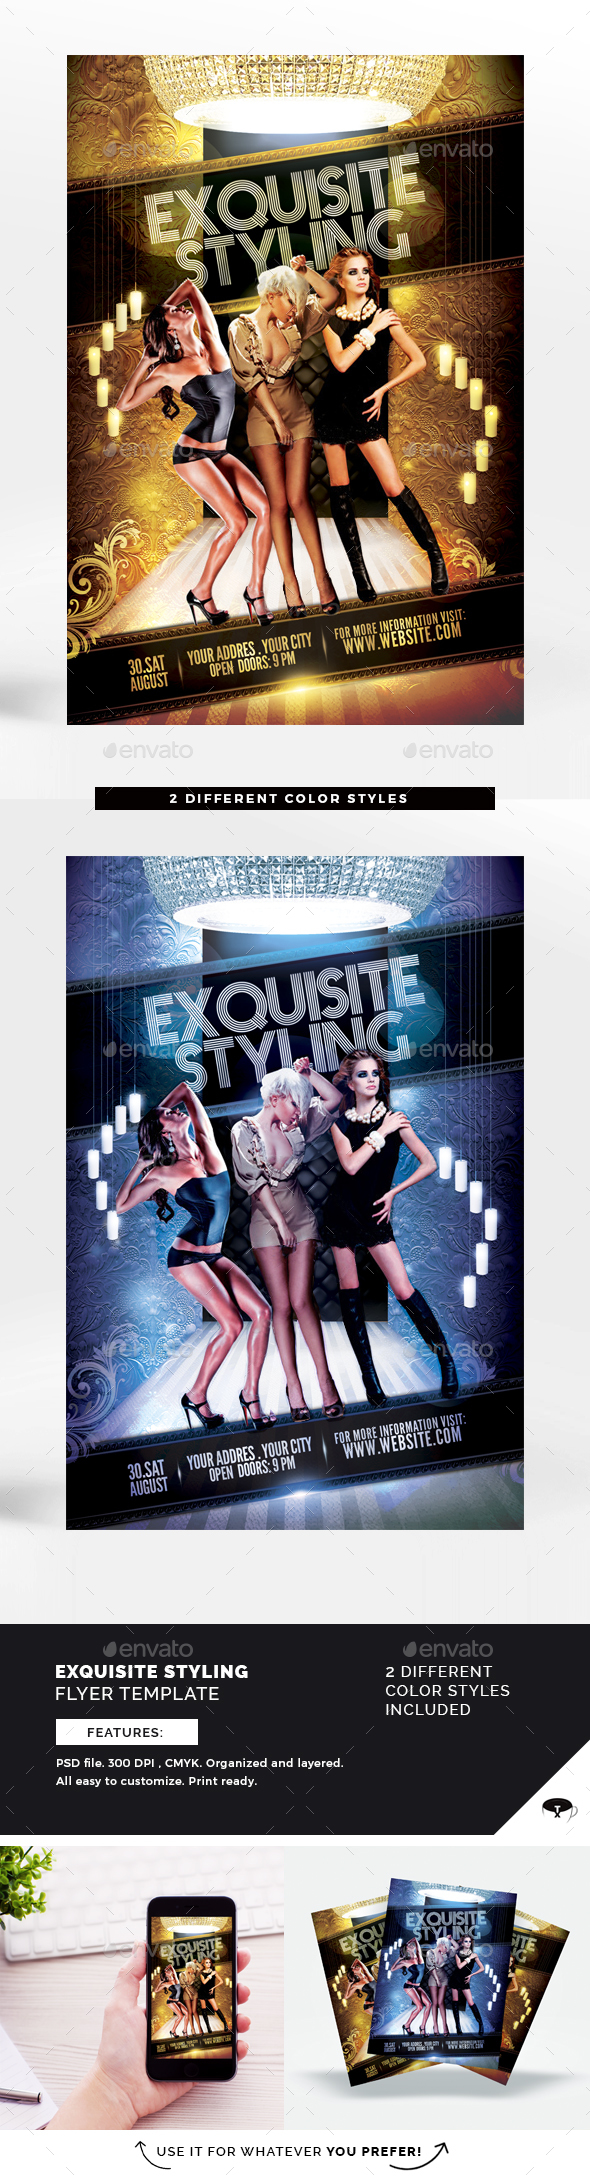 Exquisite Styling Flyer Template - Clubs & Parties Events